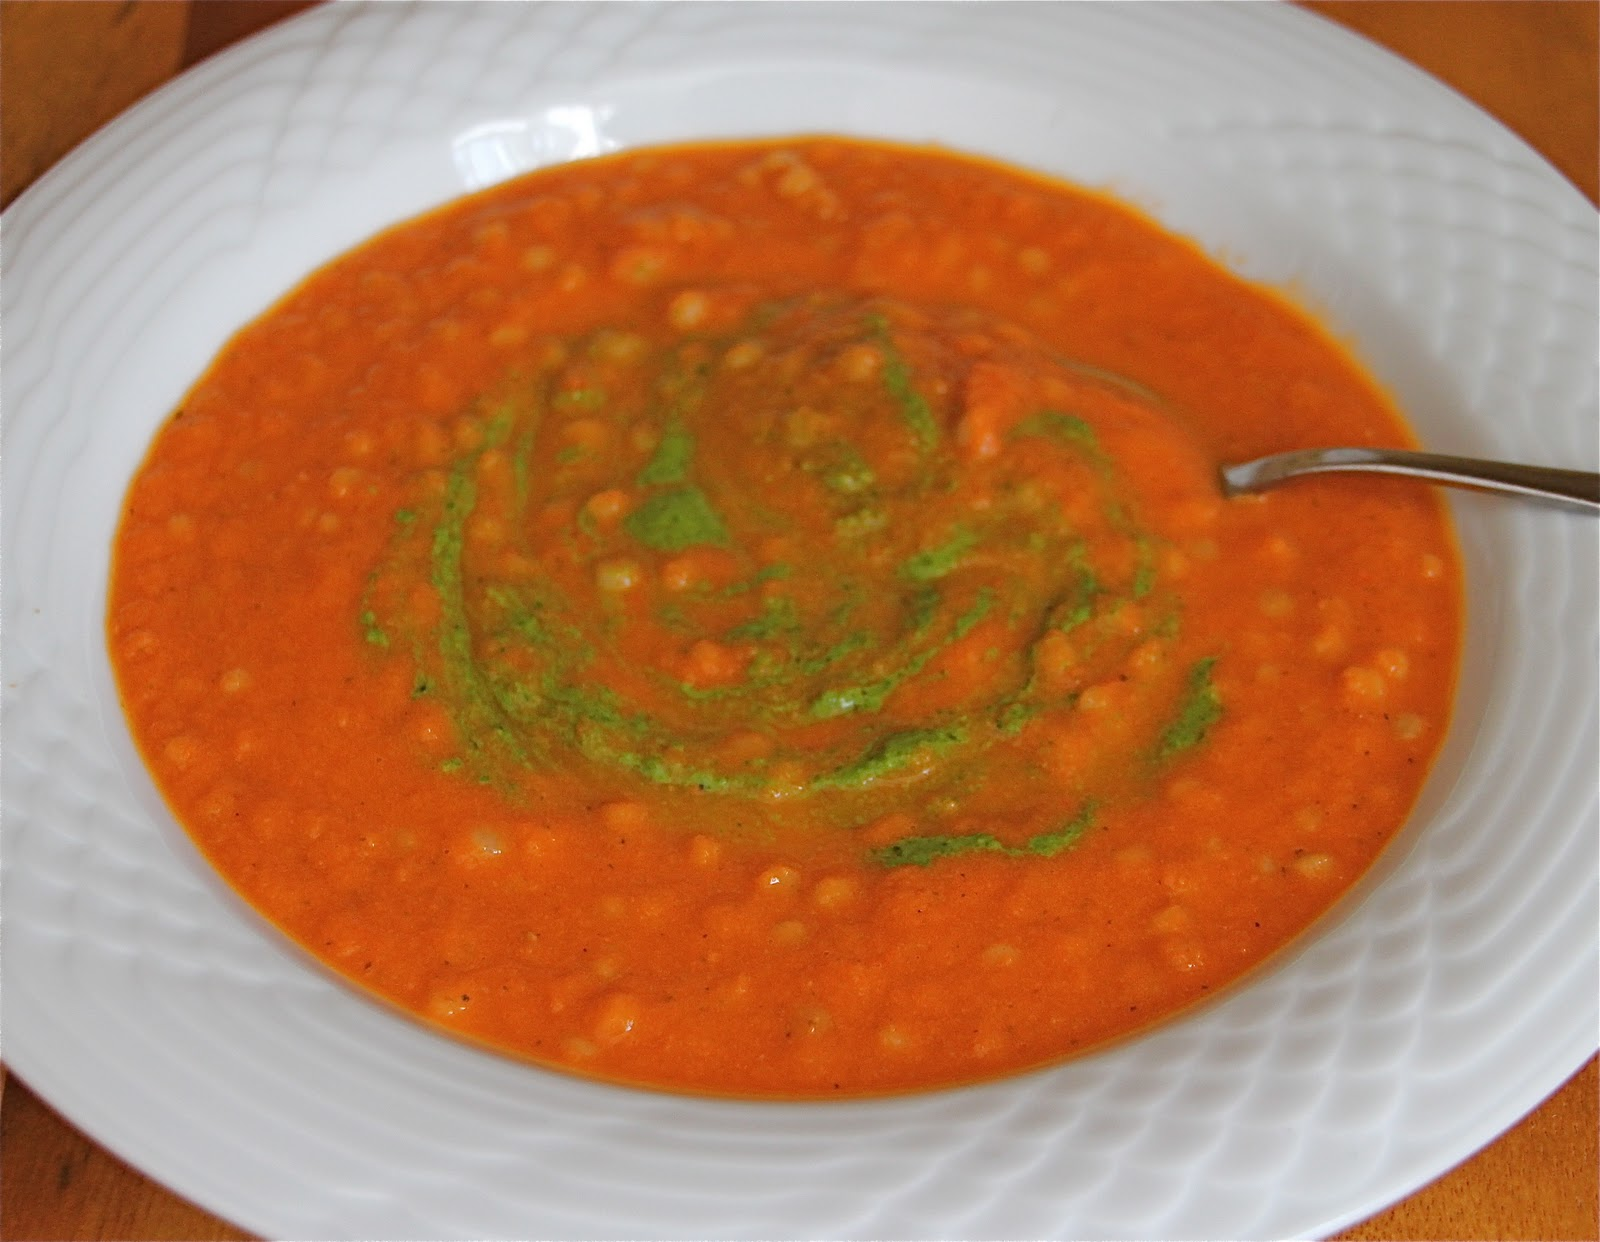 Creamless Cream of Tomato Soup with a swirl of Spinach Basil Pesto